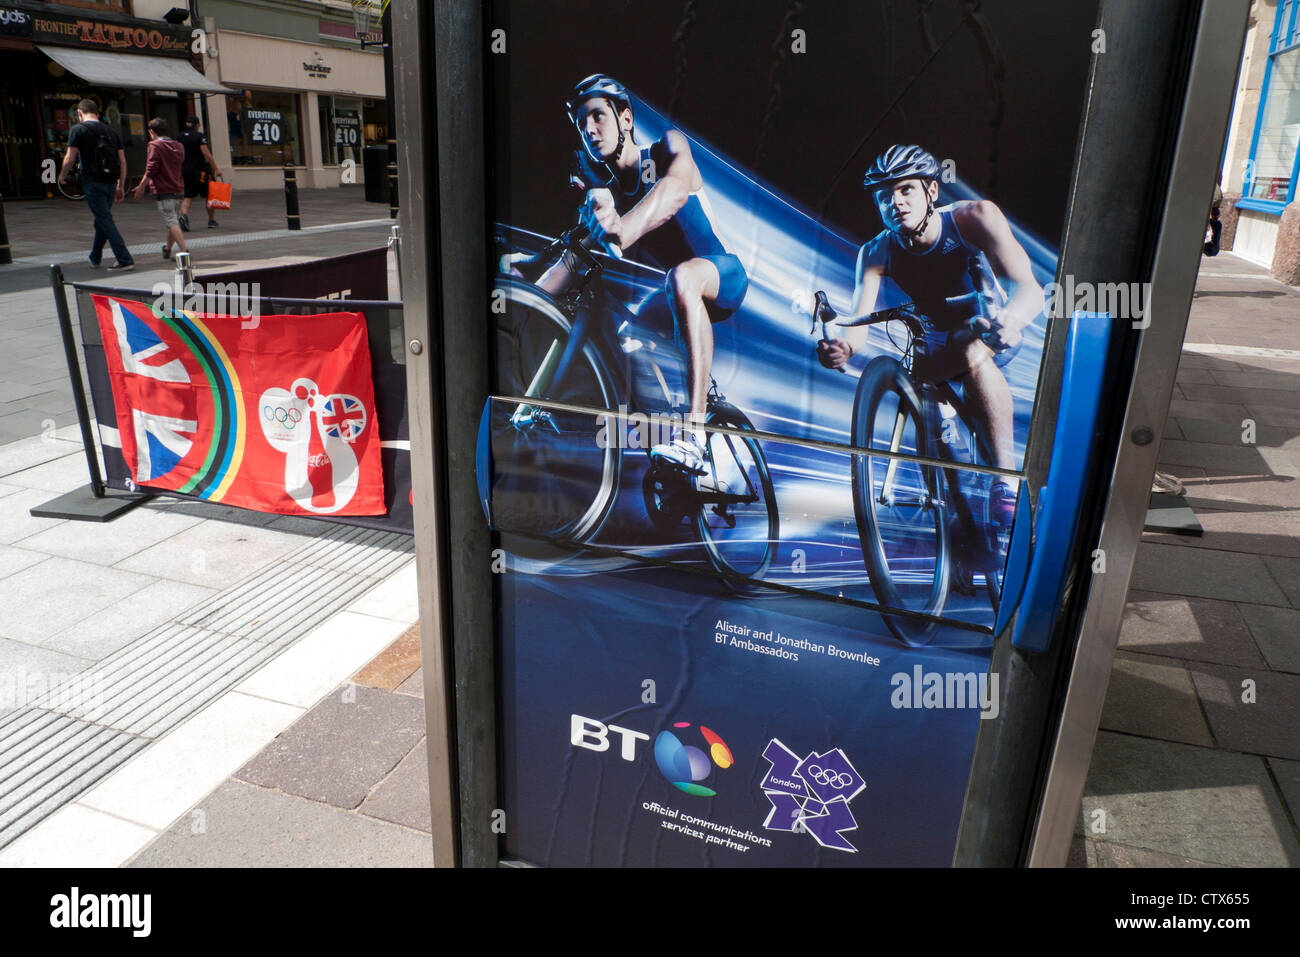 2012 London Olympics Brownlee brothers cycling sponsorship by BT British Telecom on phone boxes in Cardiff  UK  - Stock Image